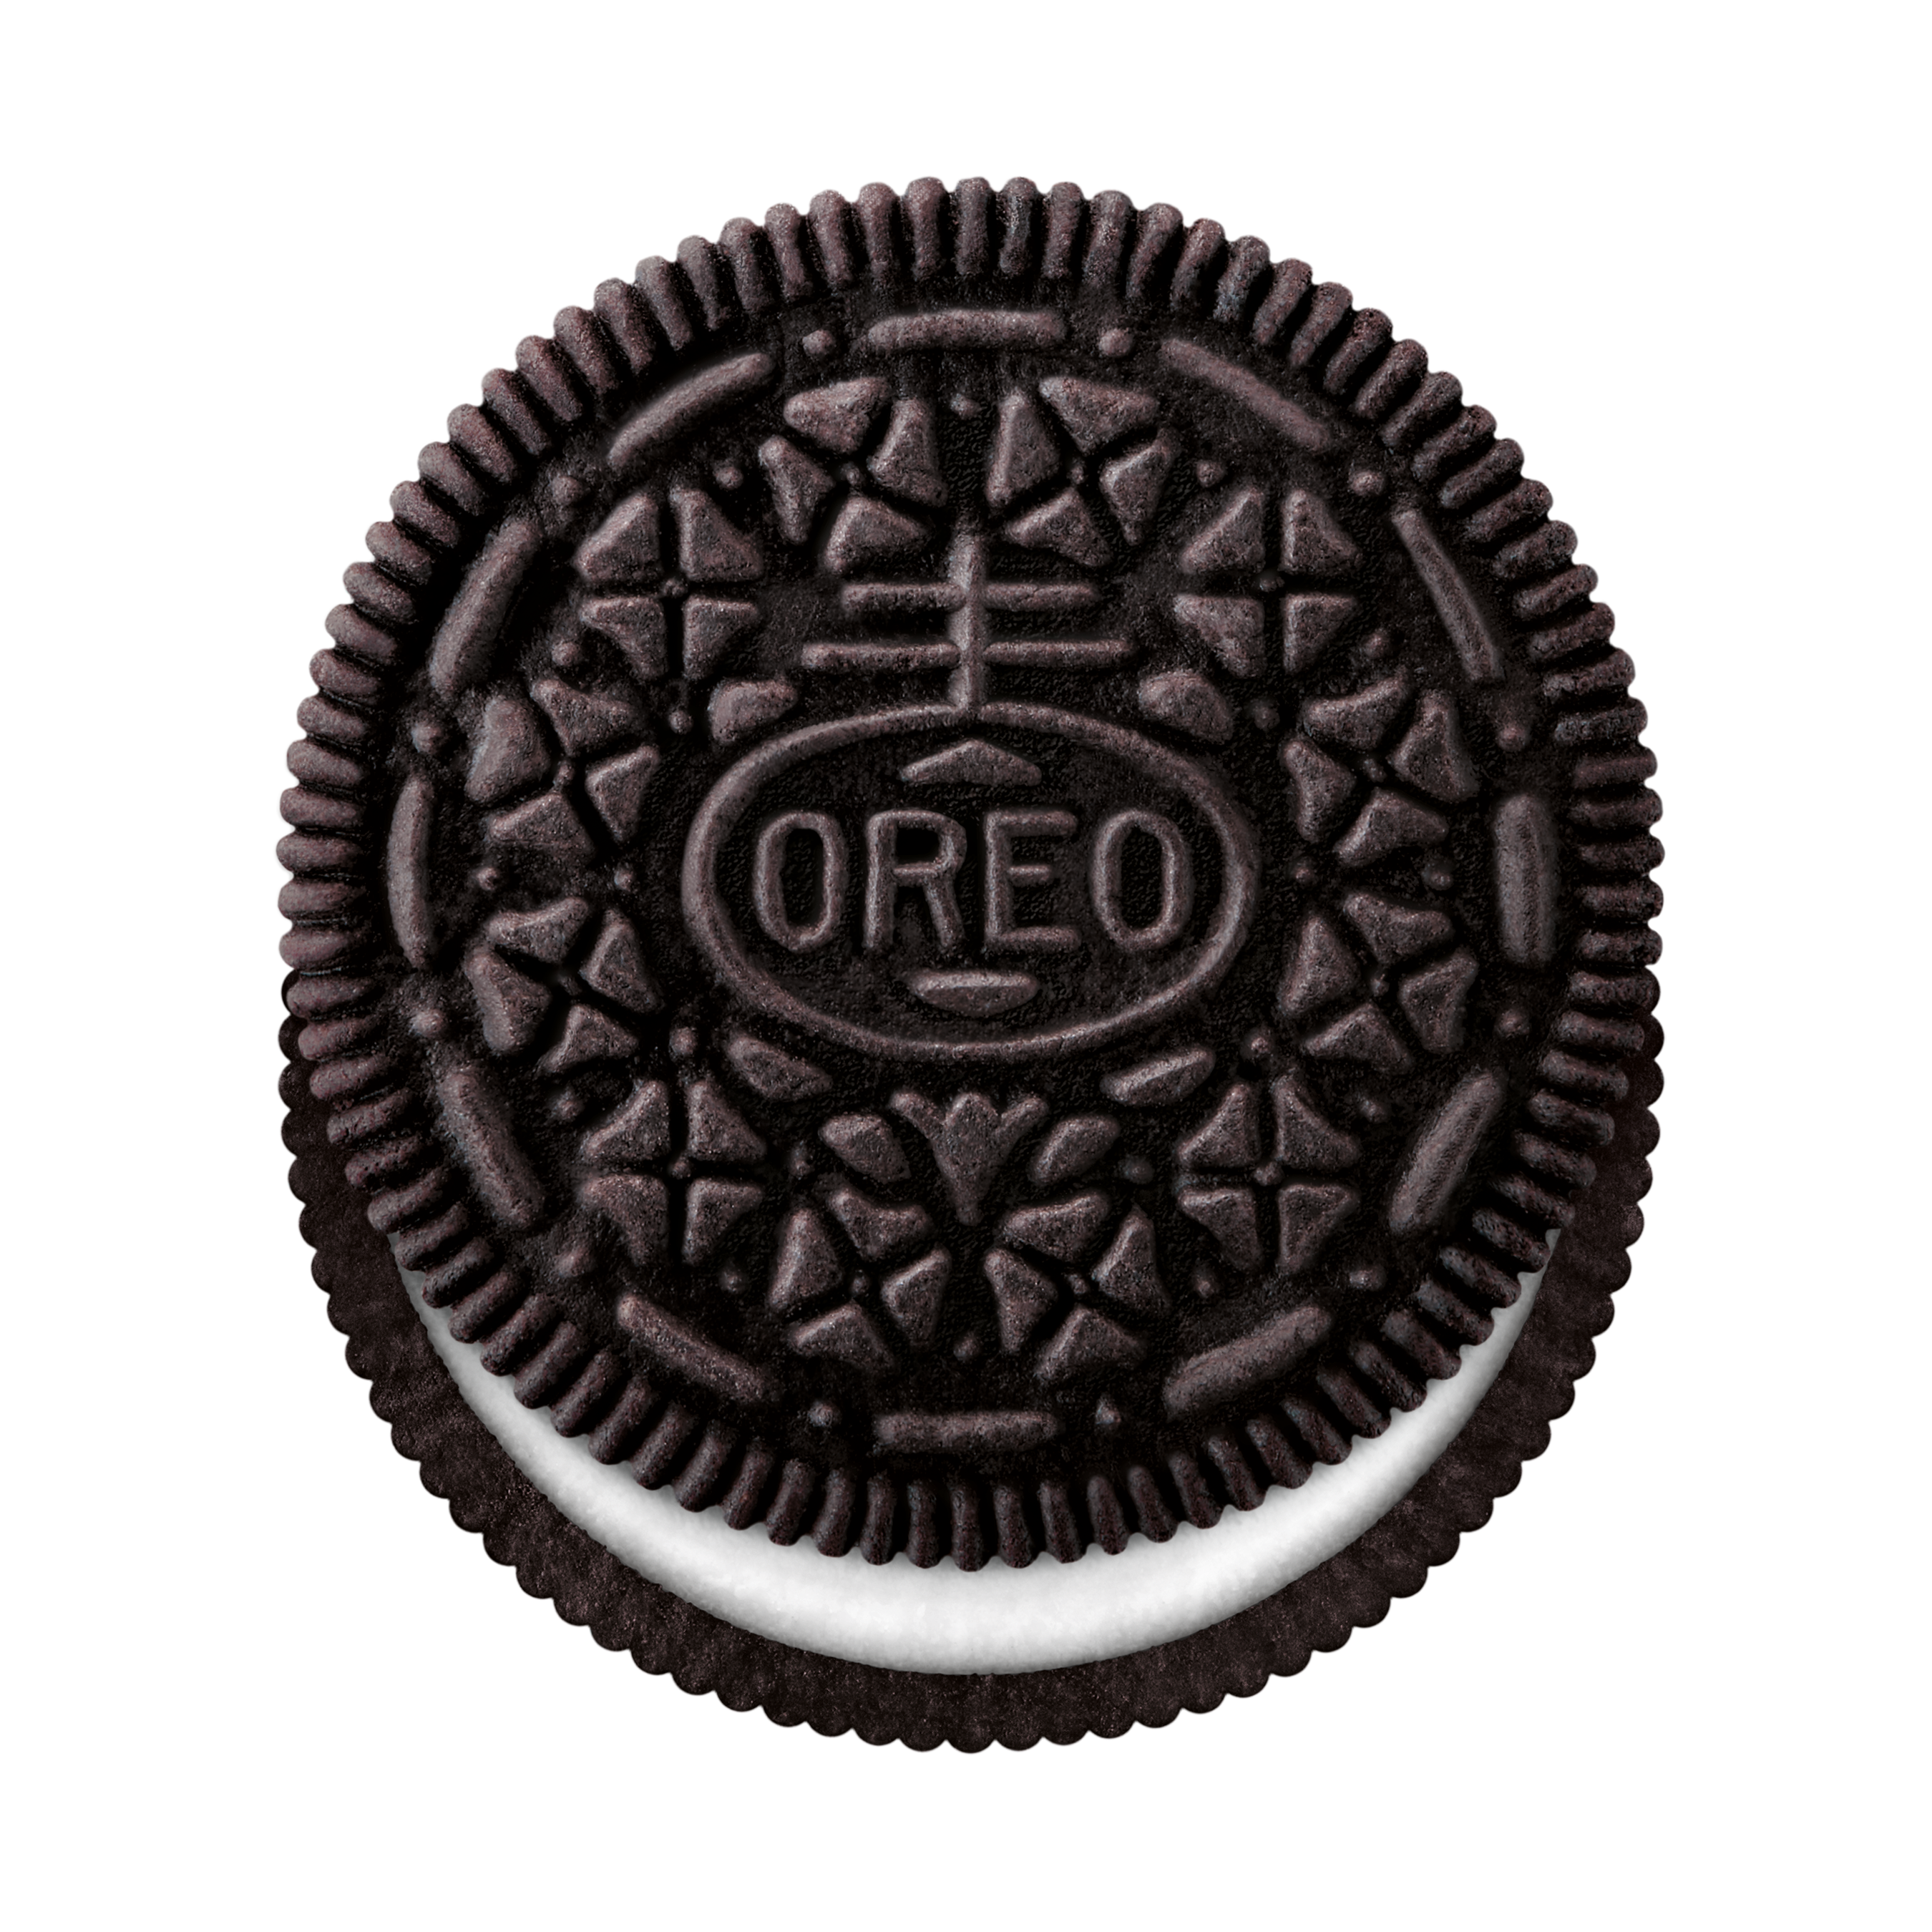 oreo cookie png